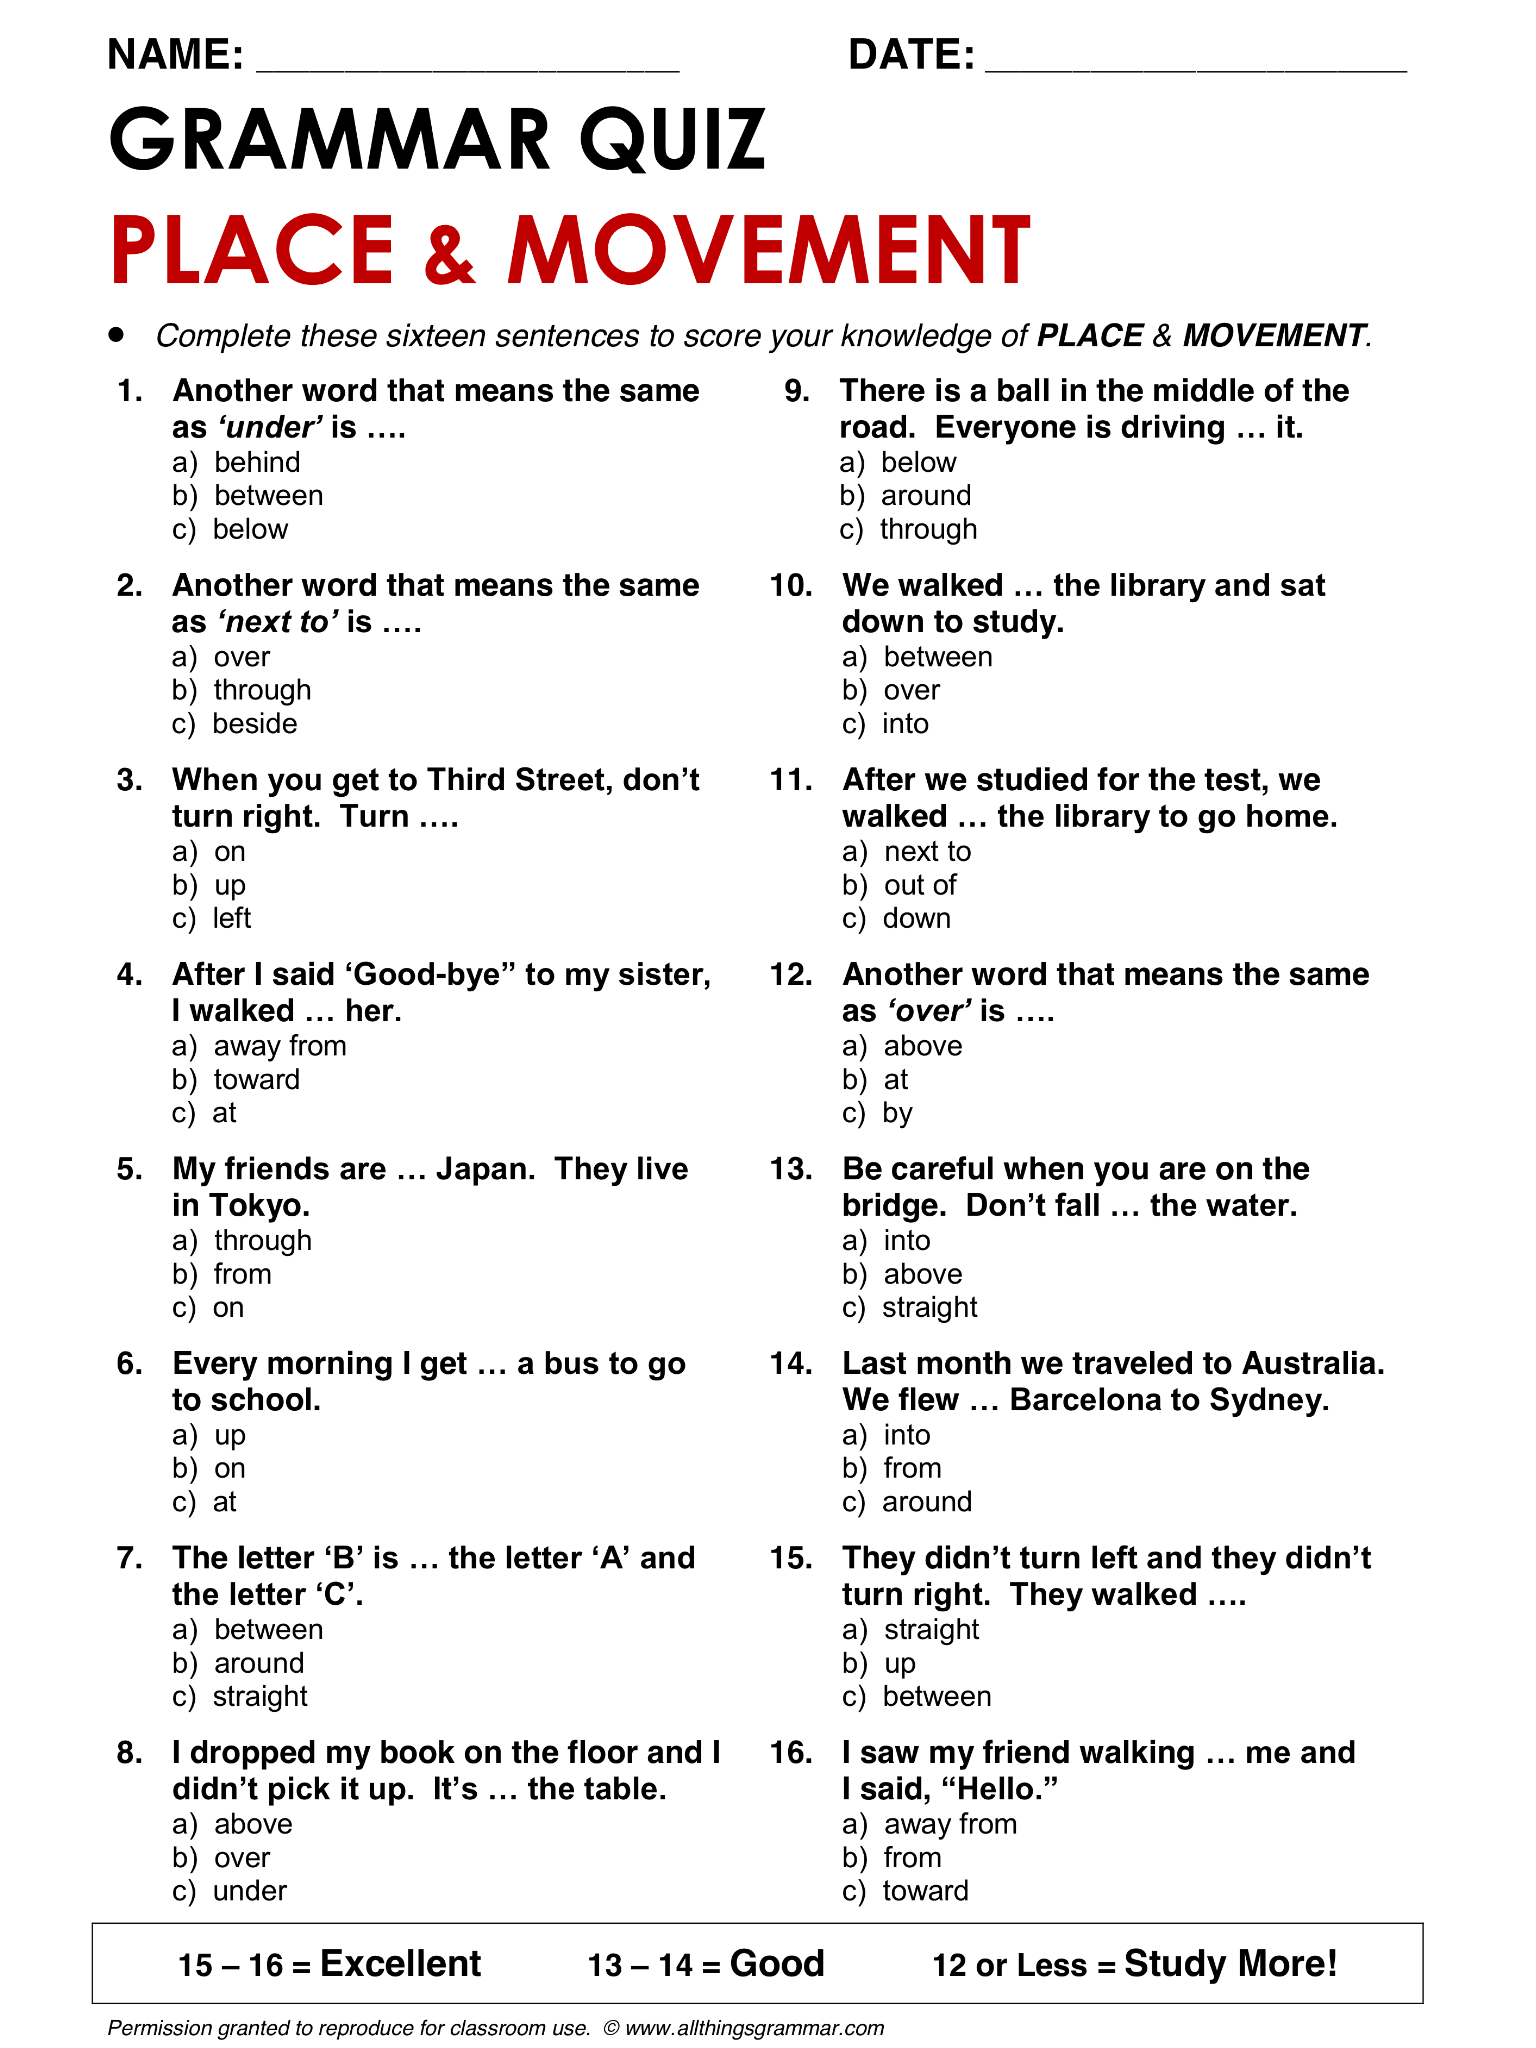 English Grammar Prepositions Of Place And Movement